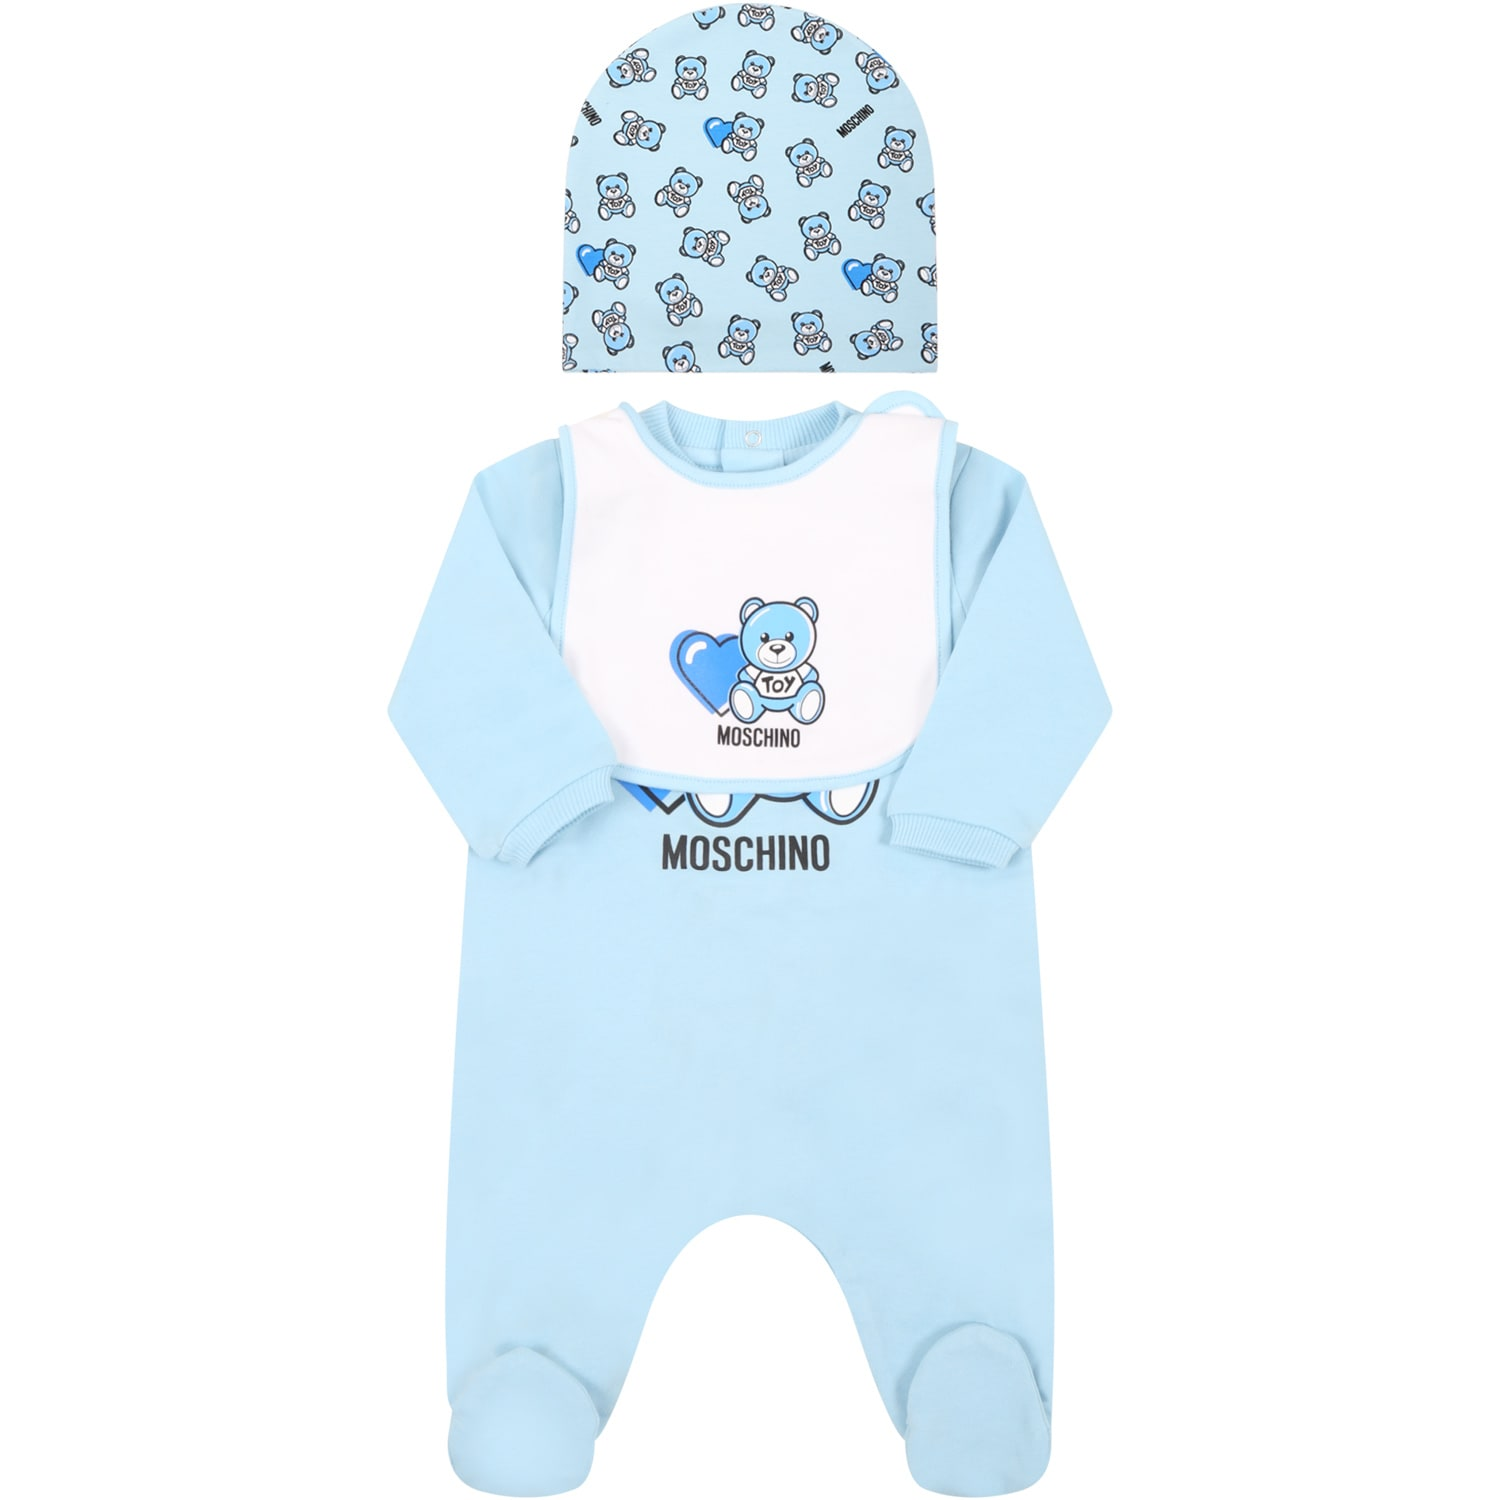 Moschino LIGHT BLUE SET FOR BABYBOY WITH TEDDY BEAR